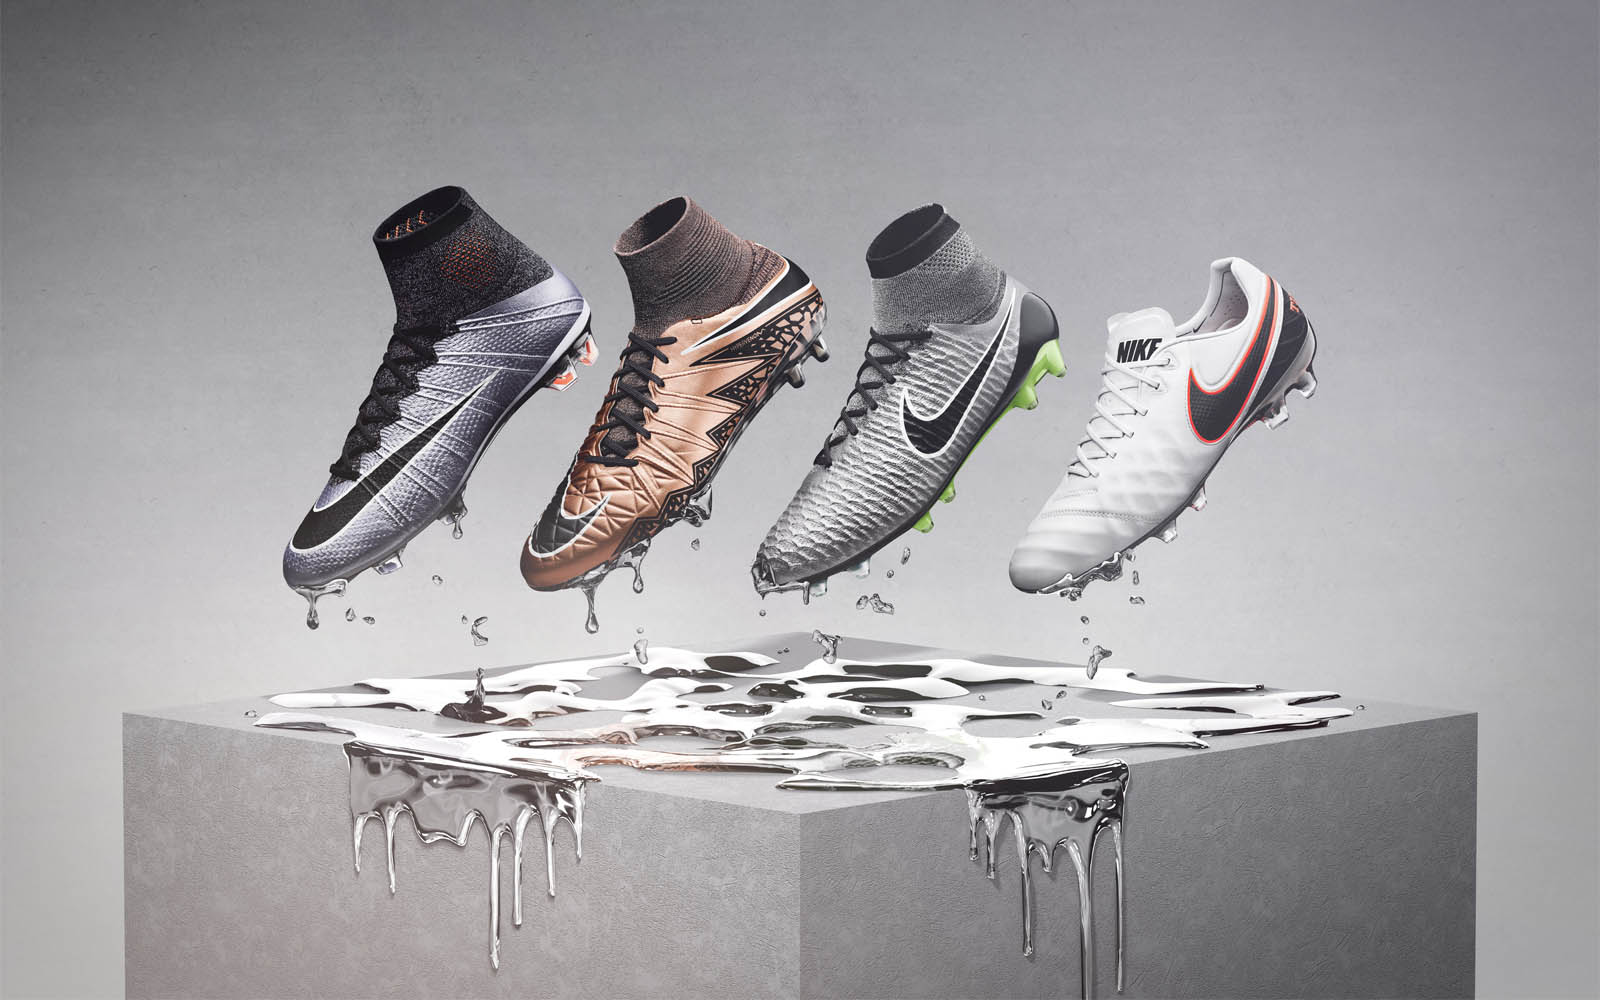 new nike football boots 2015 nike high top soccer cheap